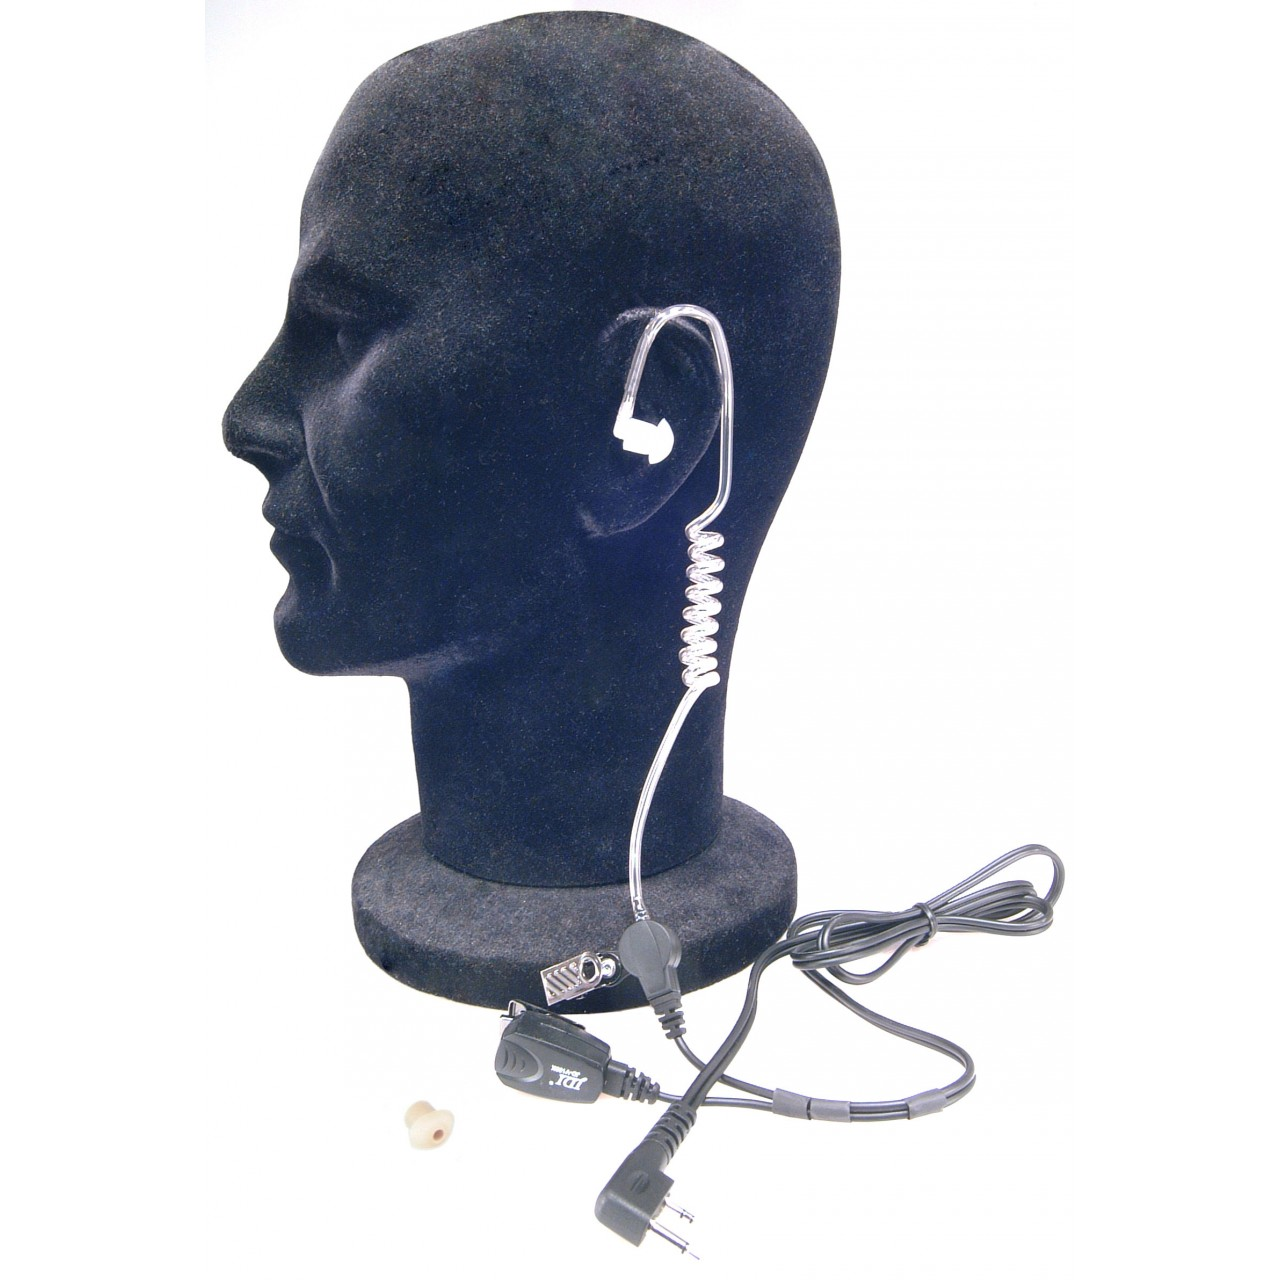 EP-JDV1601IL Headsets and earphones - ICOM